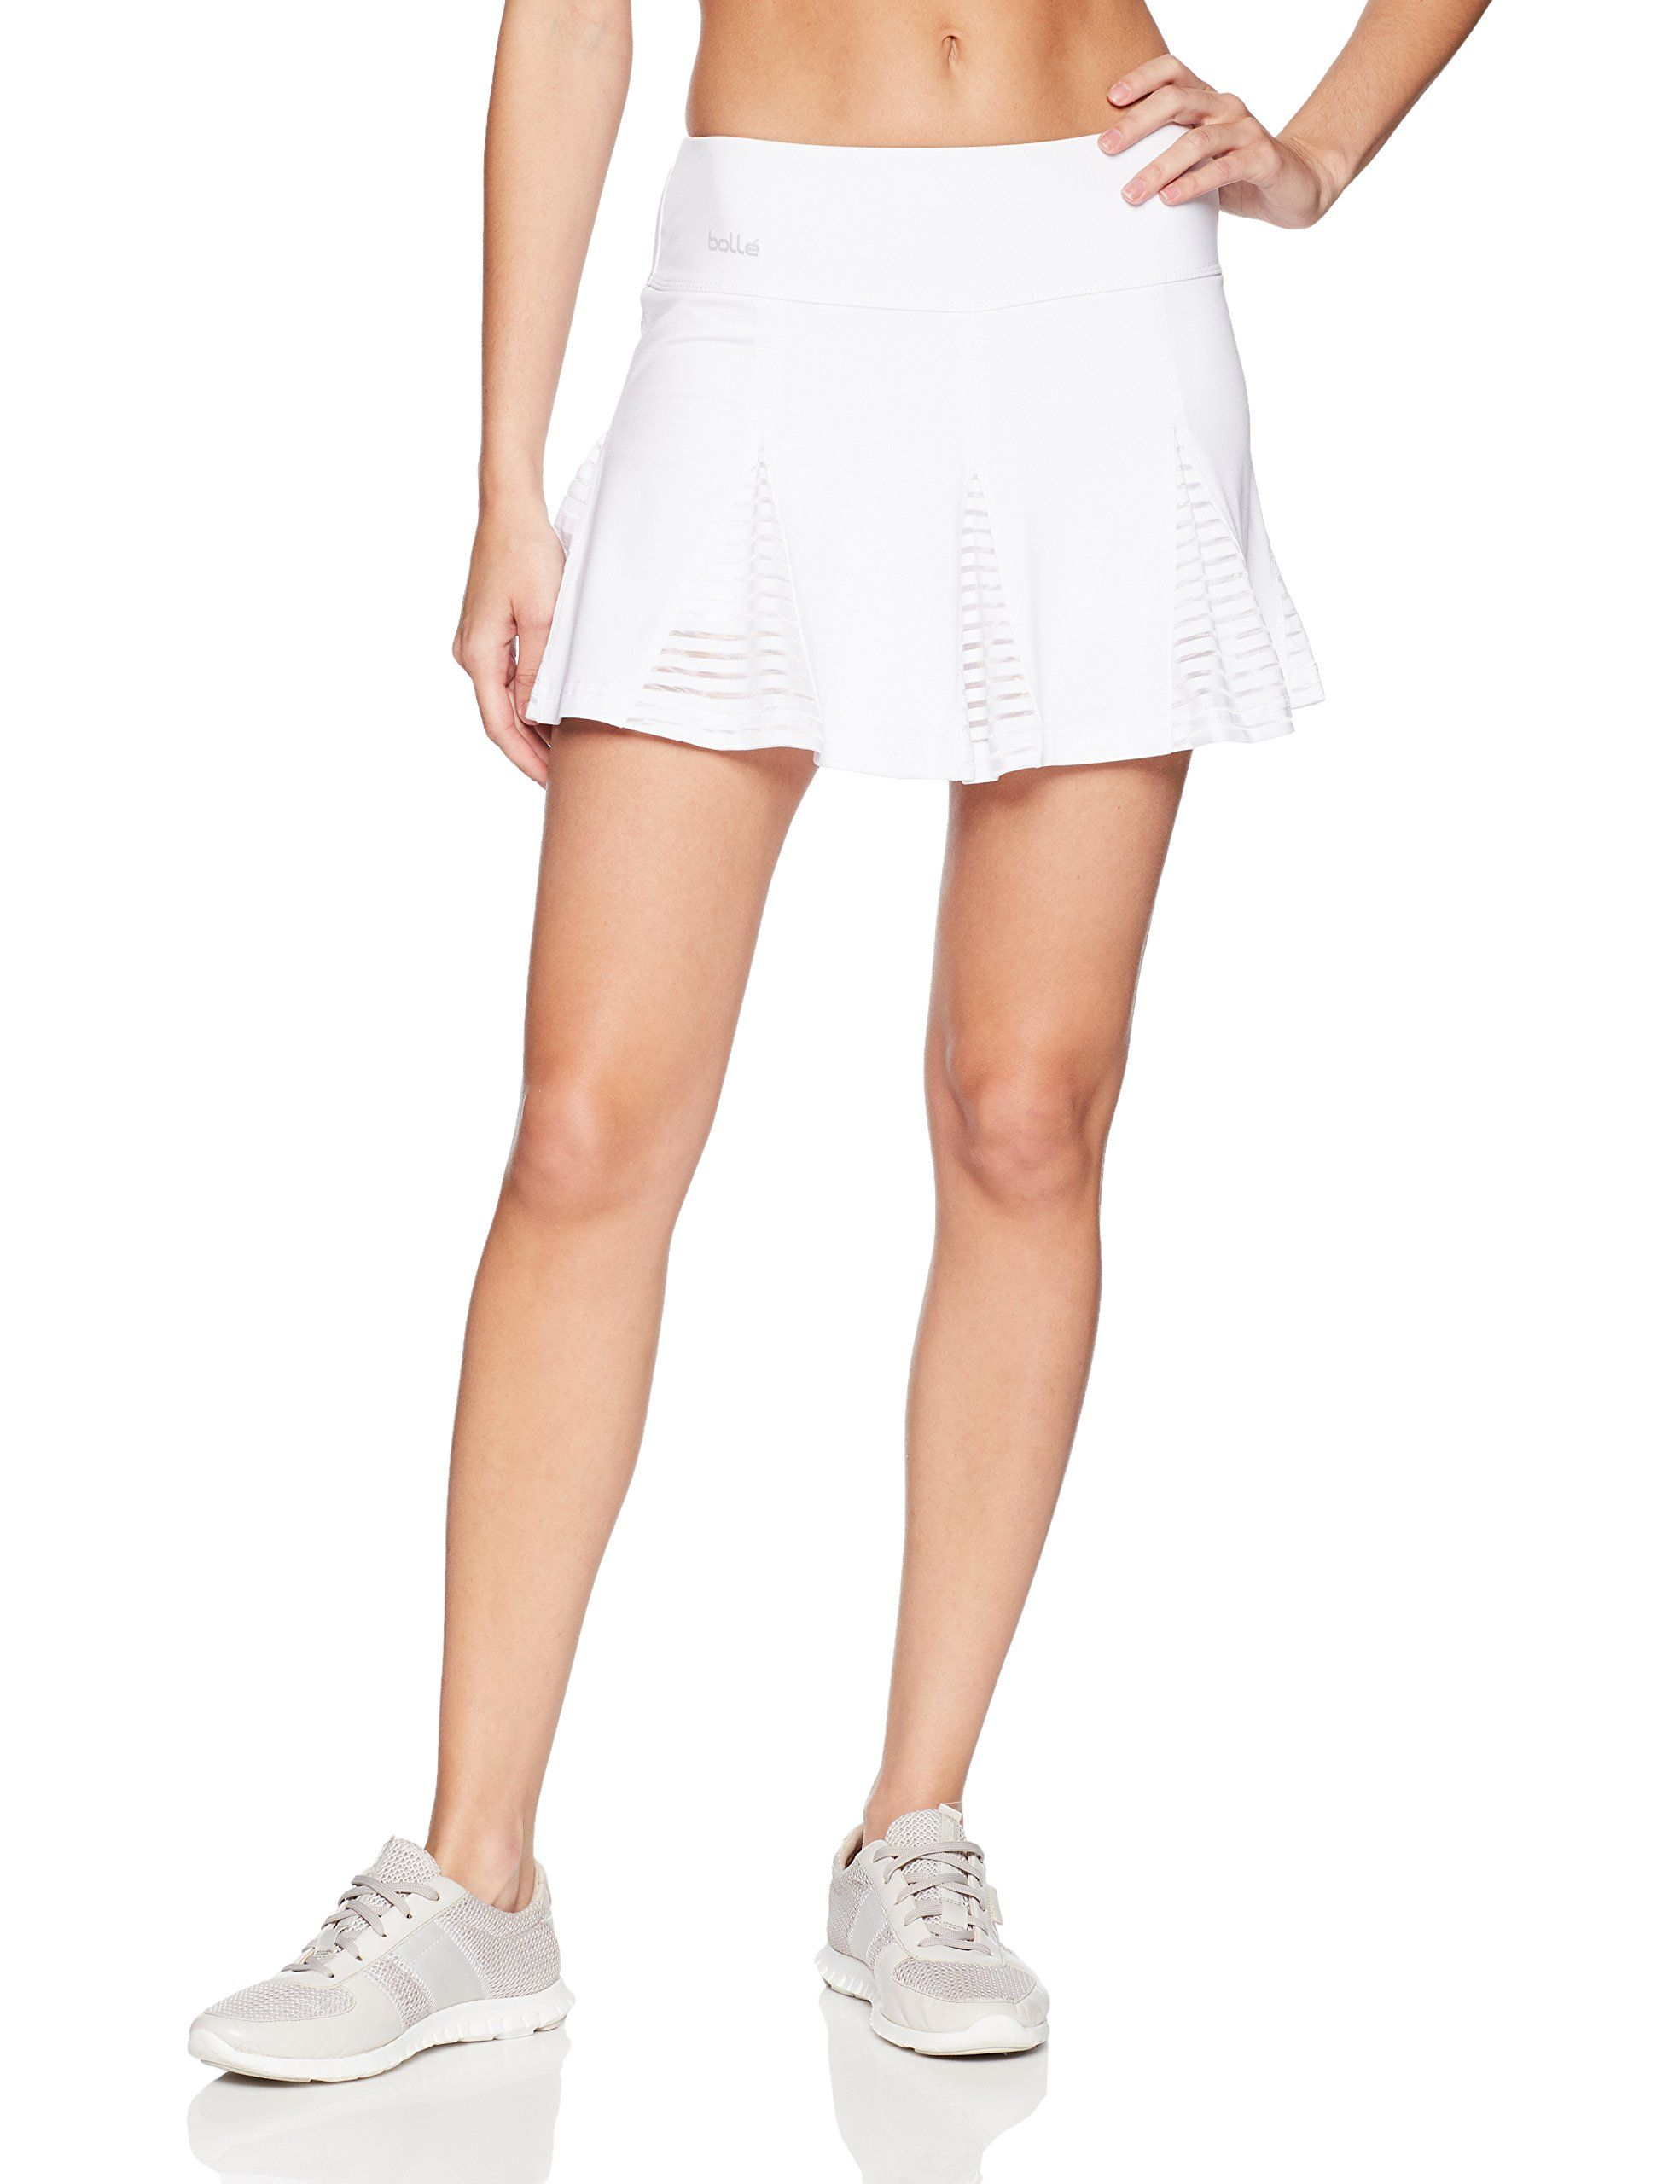 d4dcf6aa1 Bolle Womens Club Whites Pleated Athletic Skirt with Attached Shorts ...